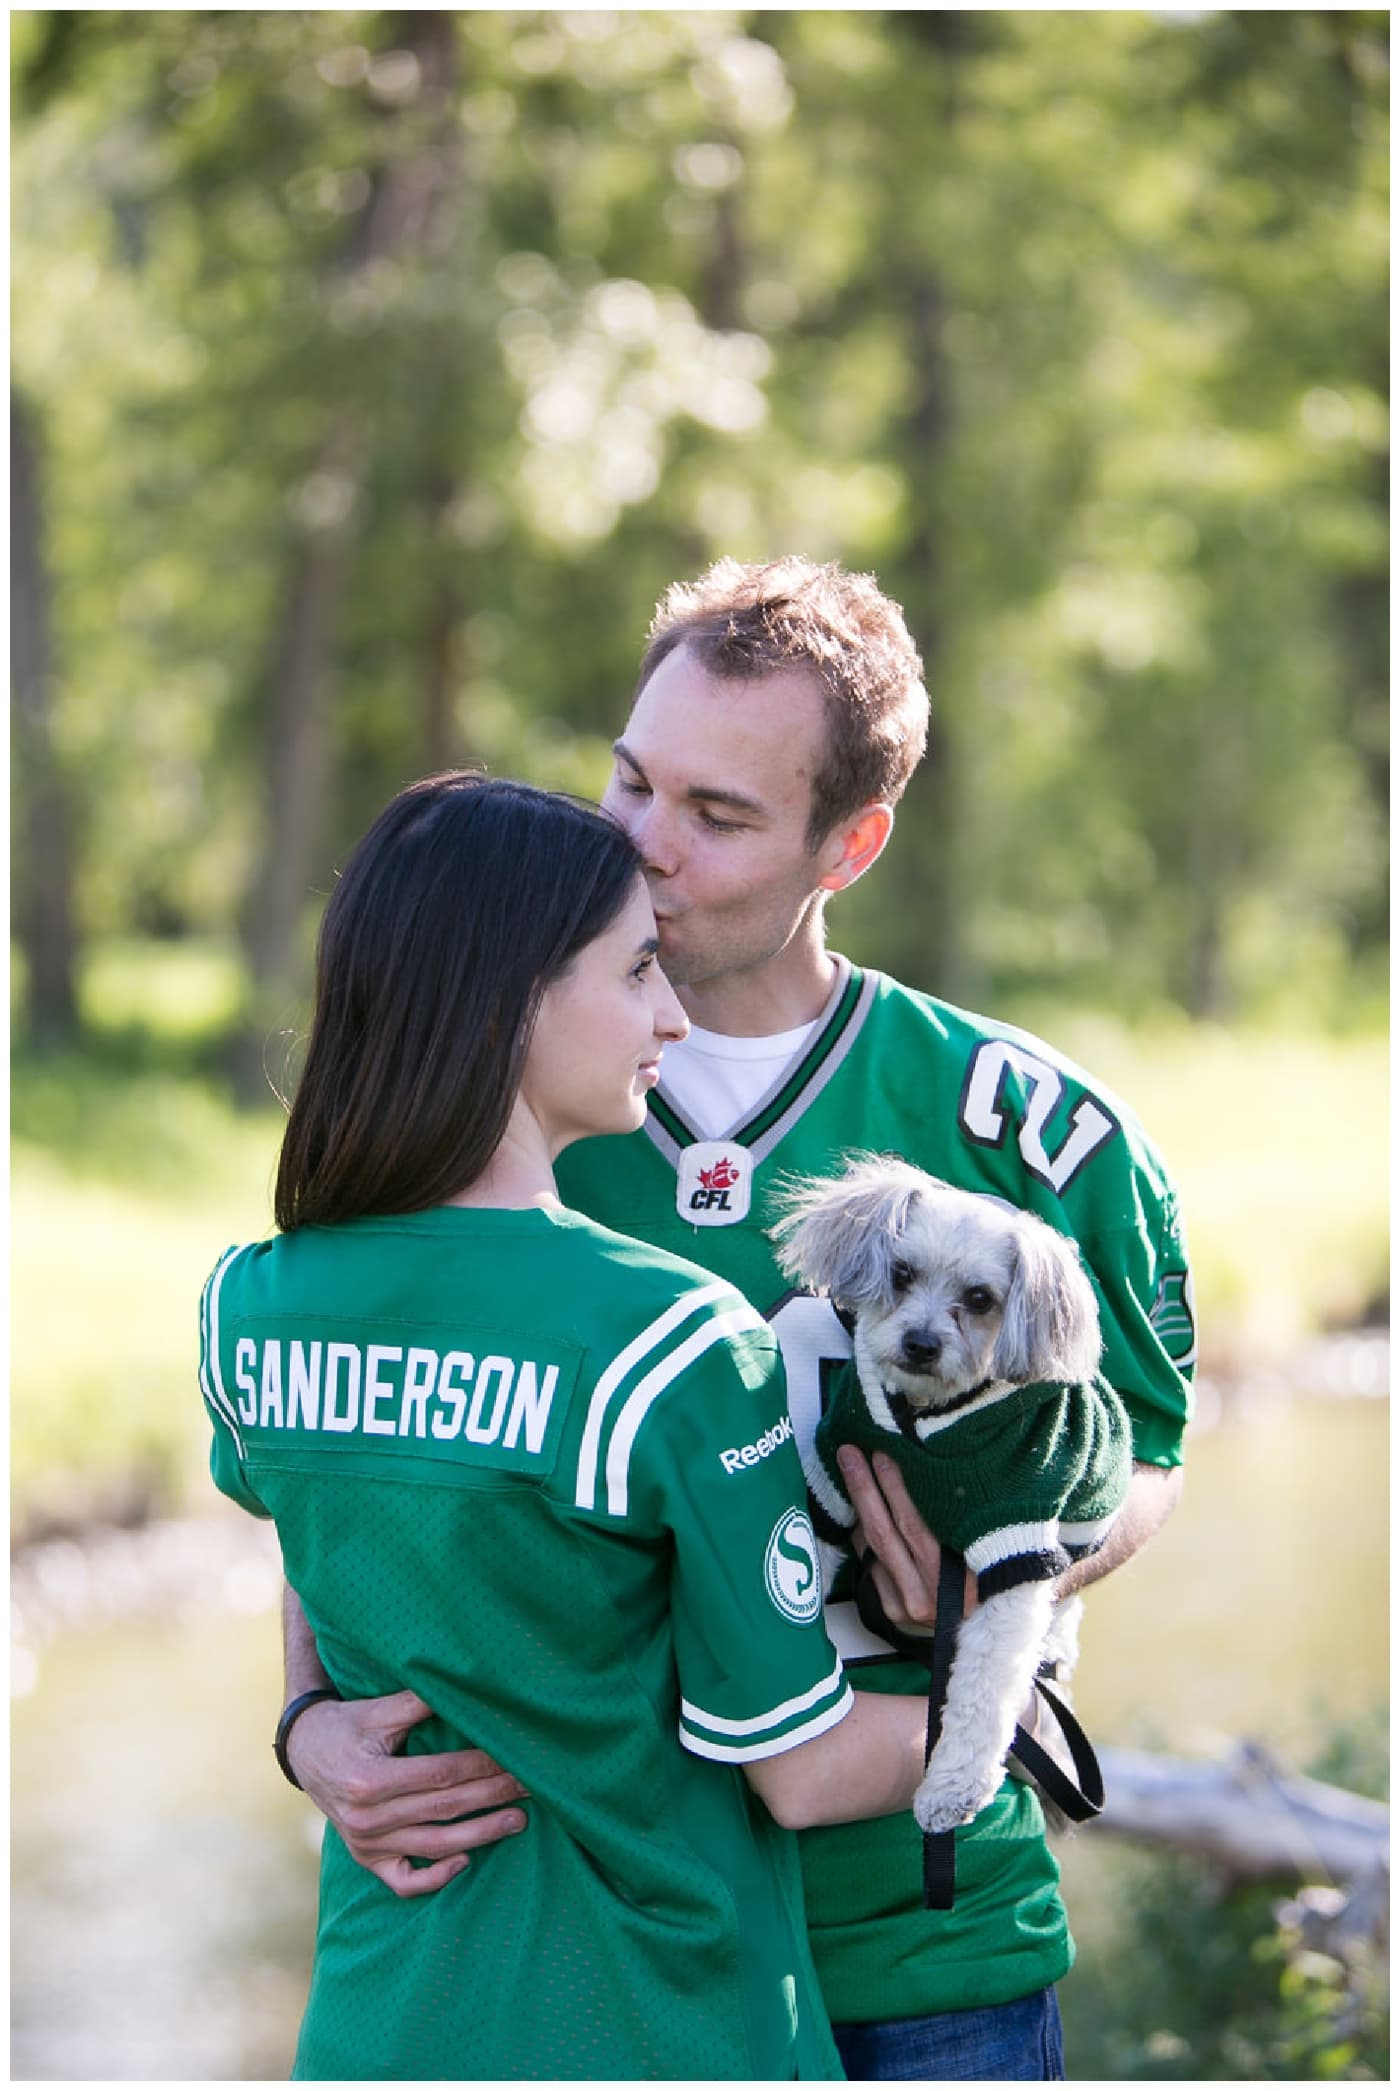 Fish Creek Park Engagement with a newly engaged couple and their dog, beautiful green trees, bridegs, and setting sunlight